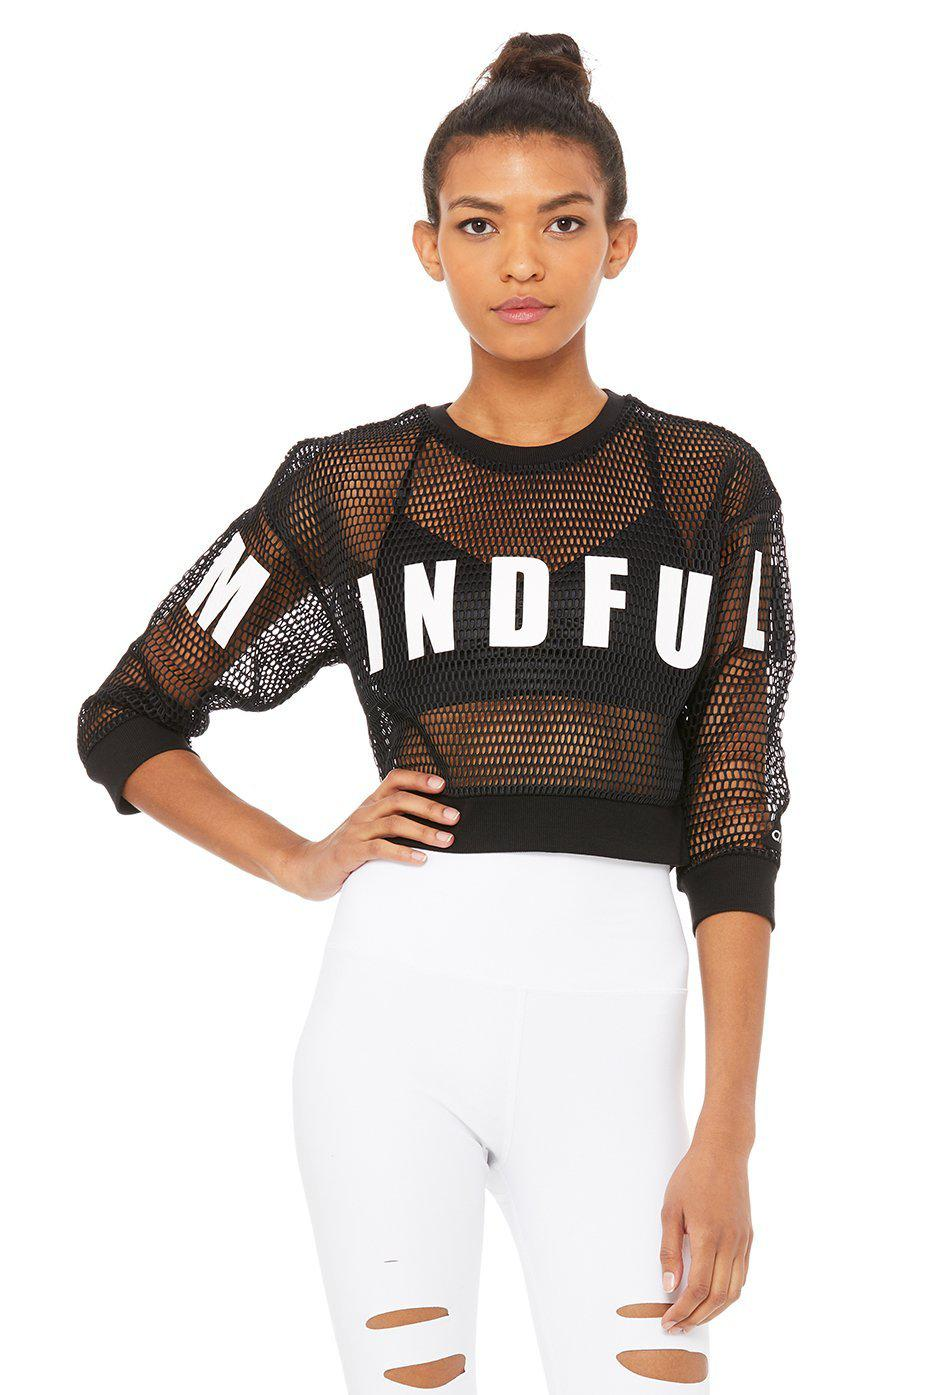 Structured Graphic Mesh Pullover - Black/Mindful Movement/White